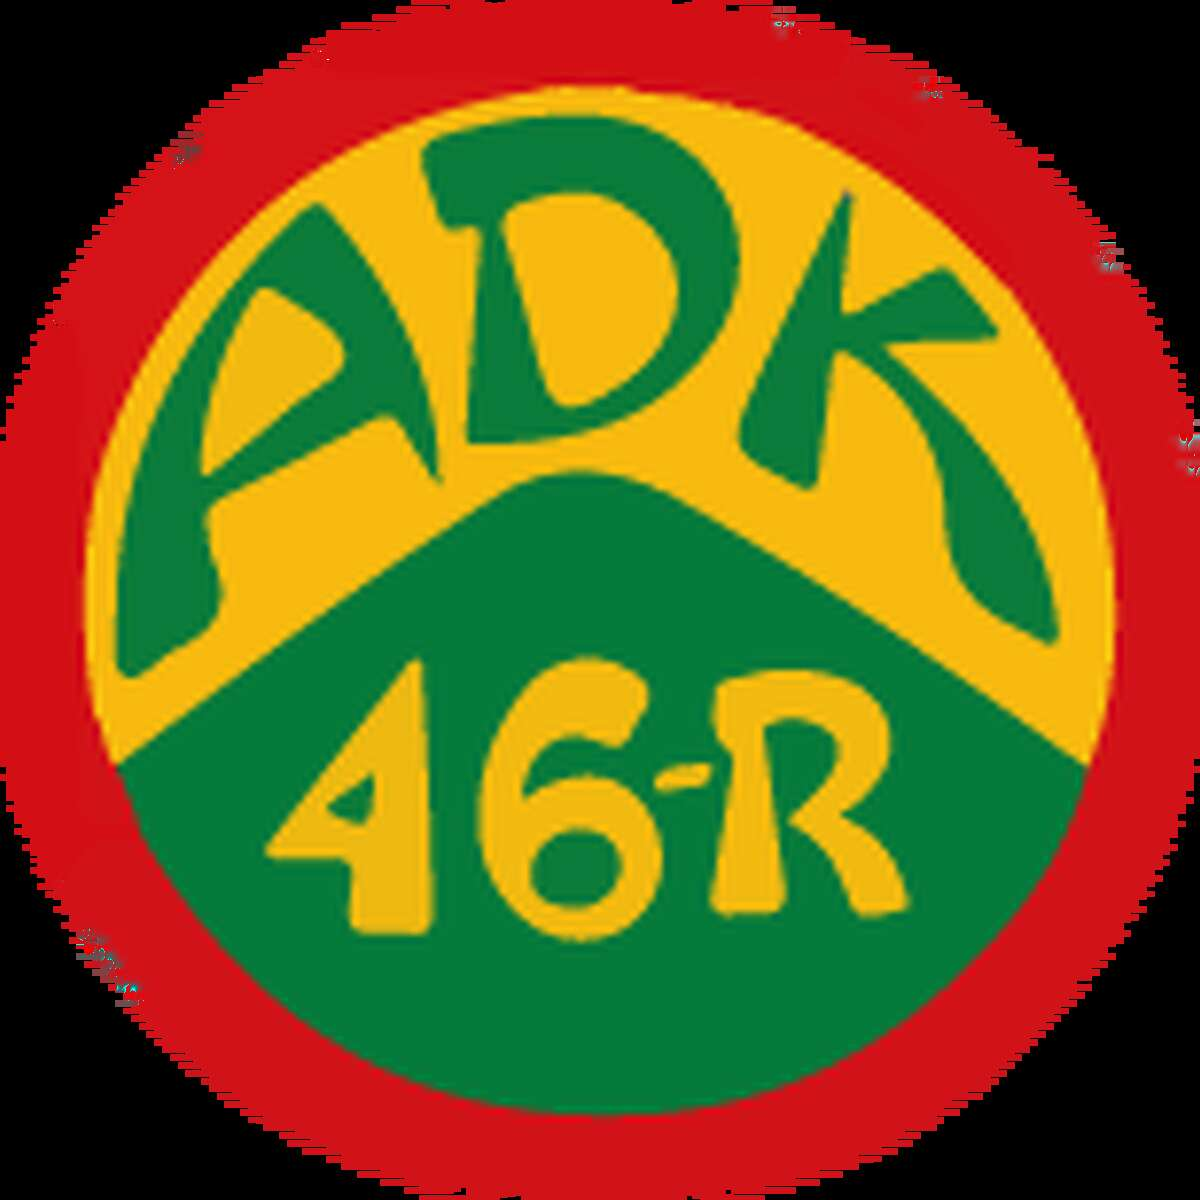 Adirondack 46ers have climbed the 46 highest peaks in New York's Adirondacks.